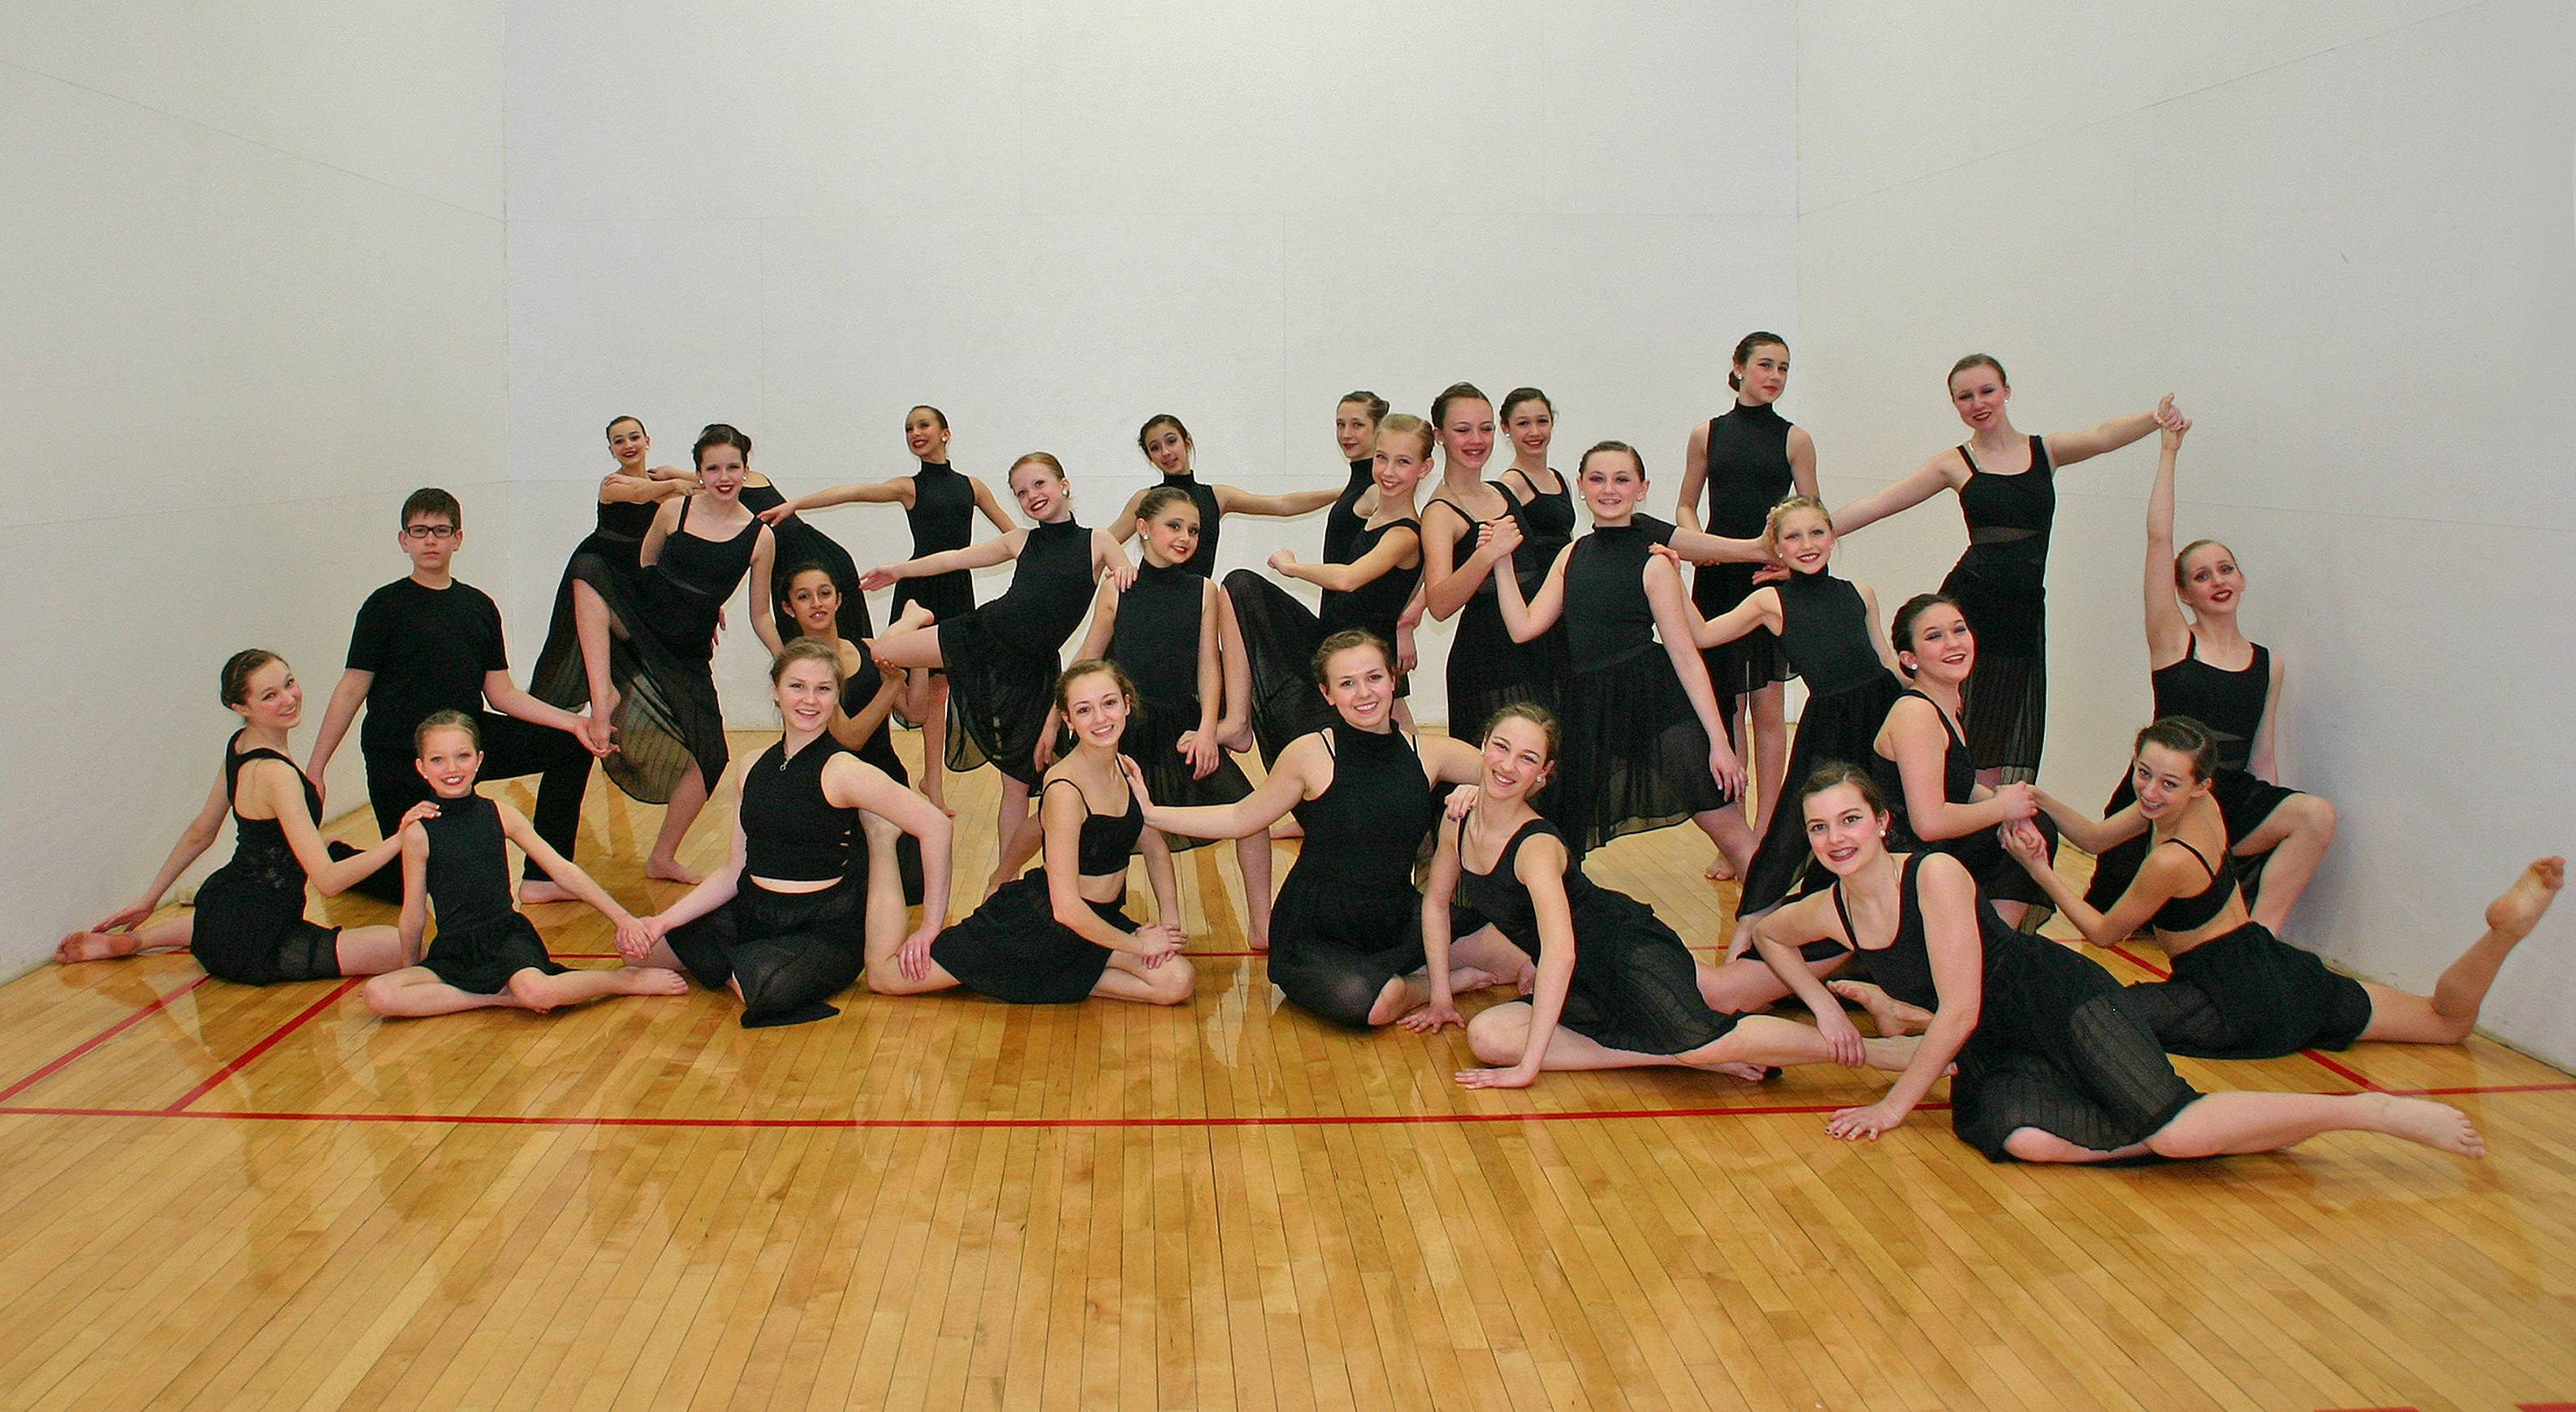 Artistry in Motion Dance Company will present Spring Showcase 2013 on April 12 and 13.